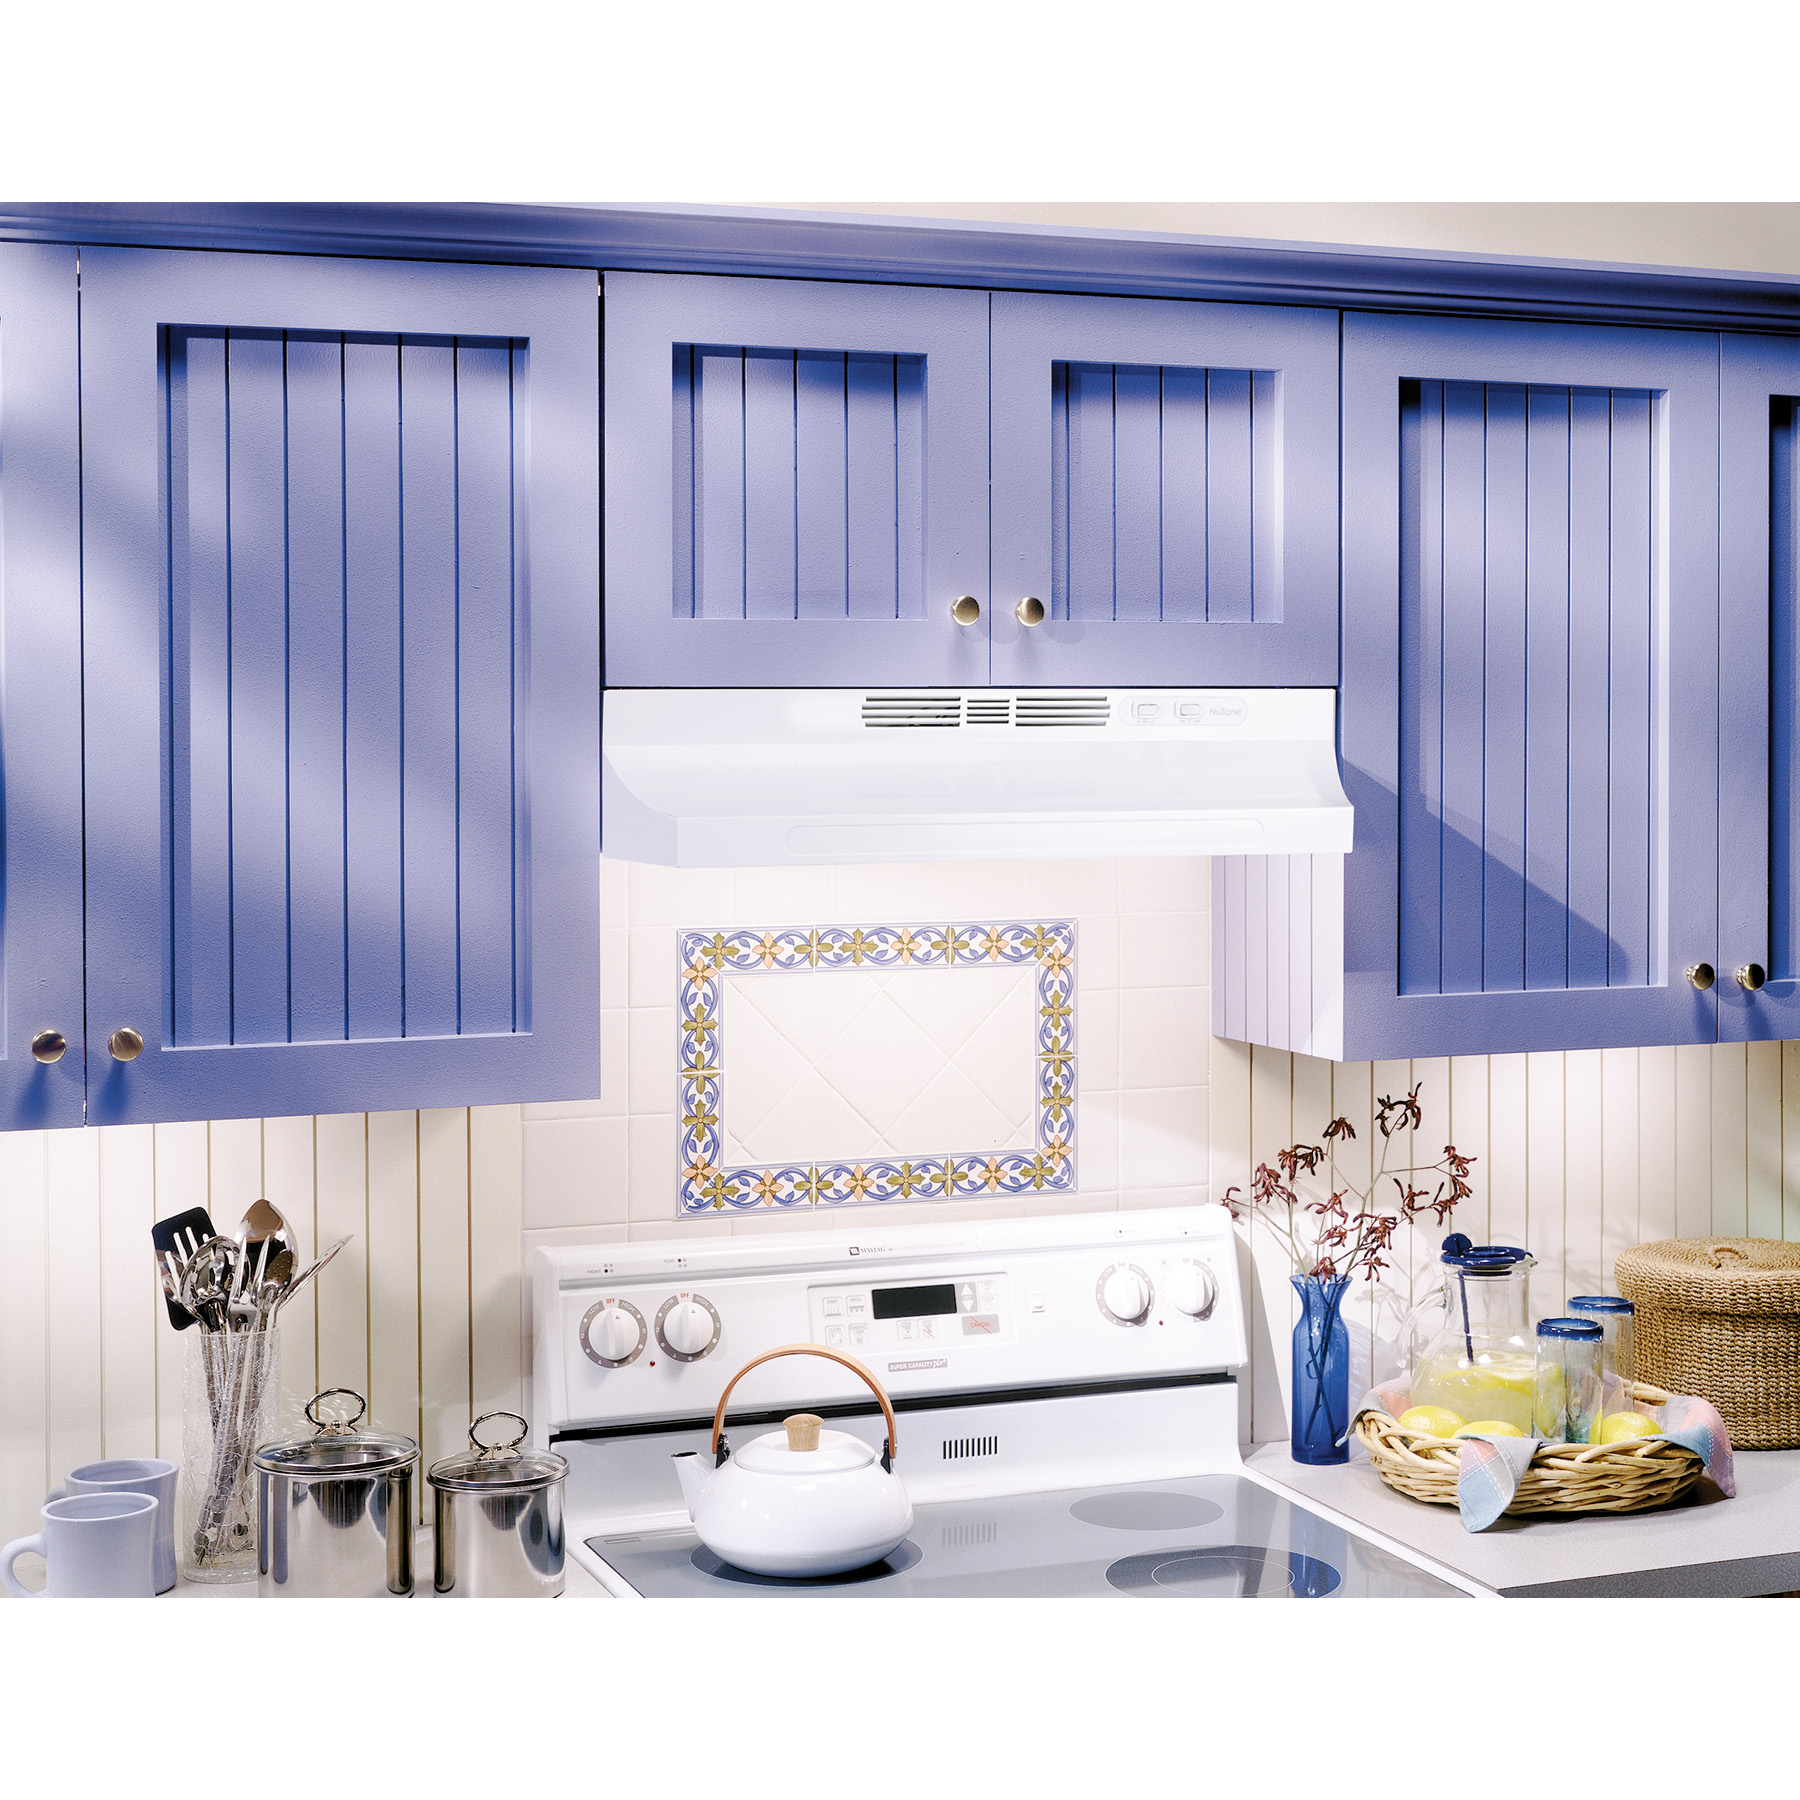 Rl6230wh Nutone 174 30 Quot Ductless Under Cabinet Range Hood W